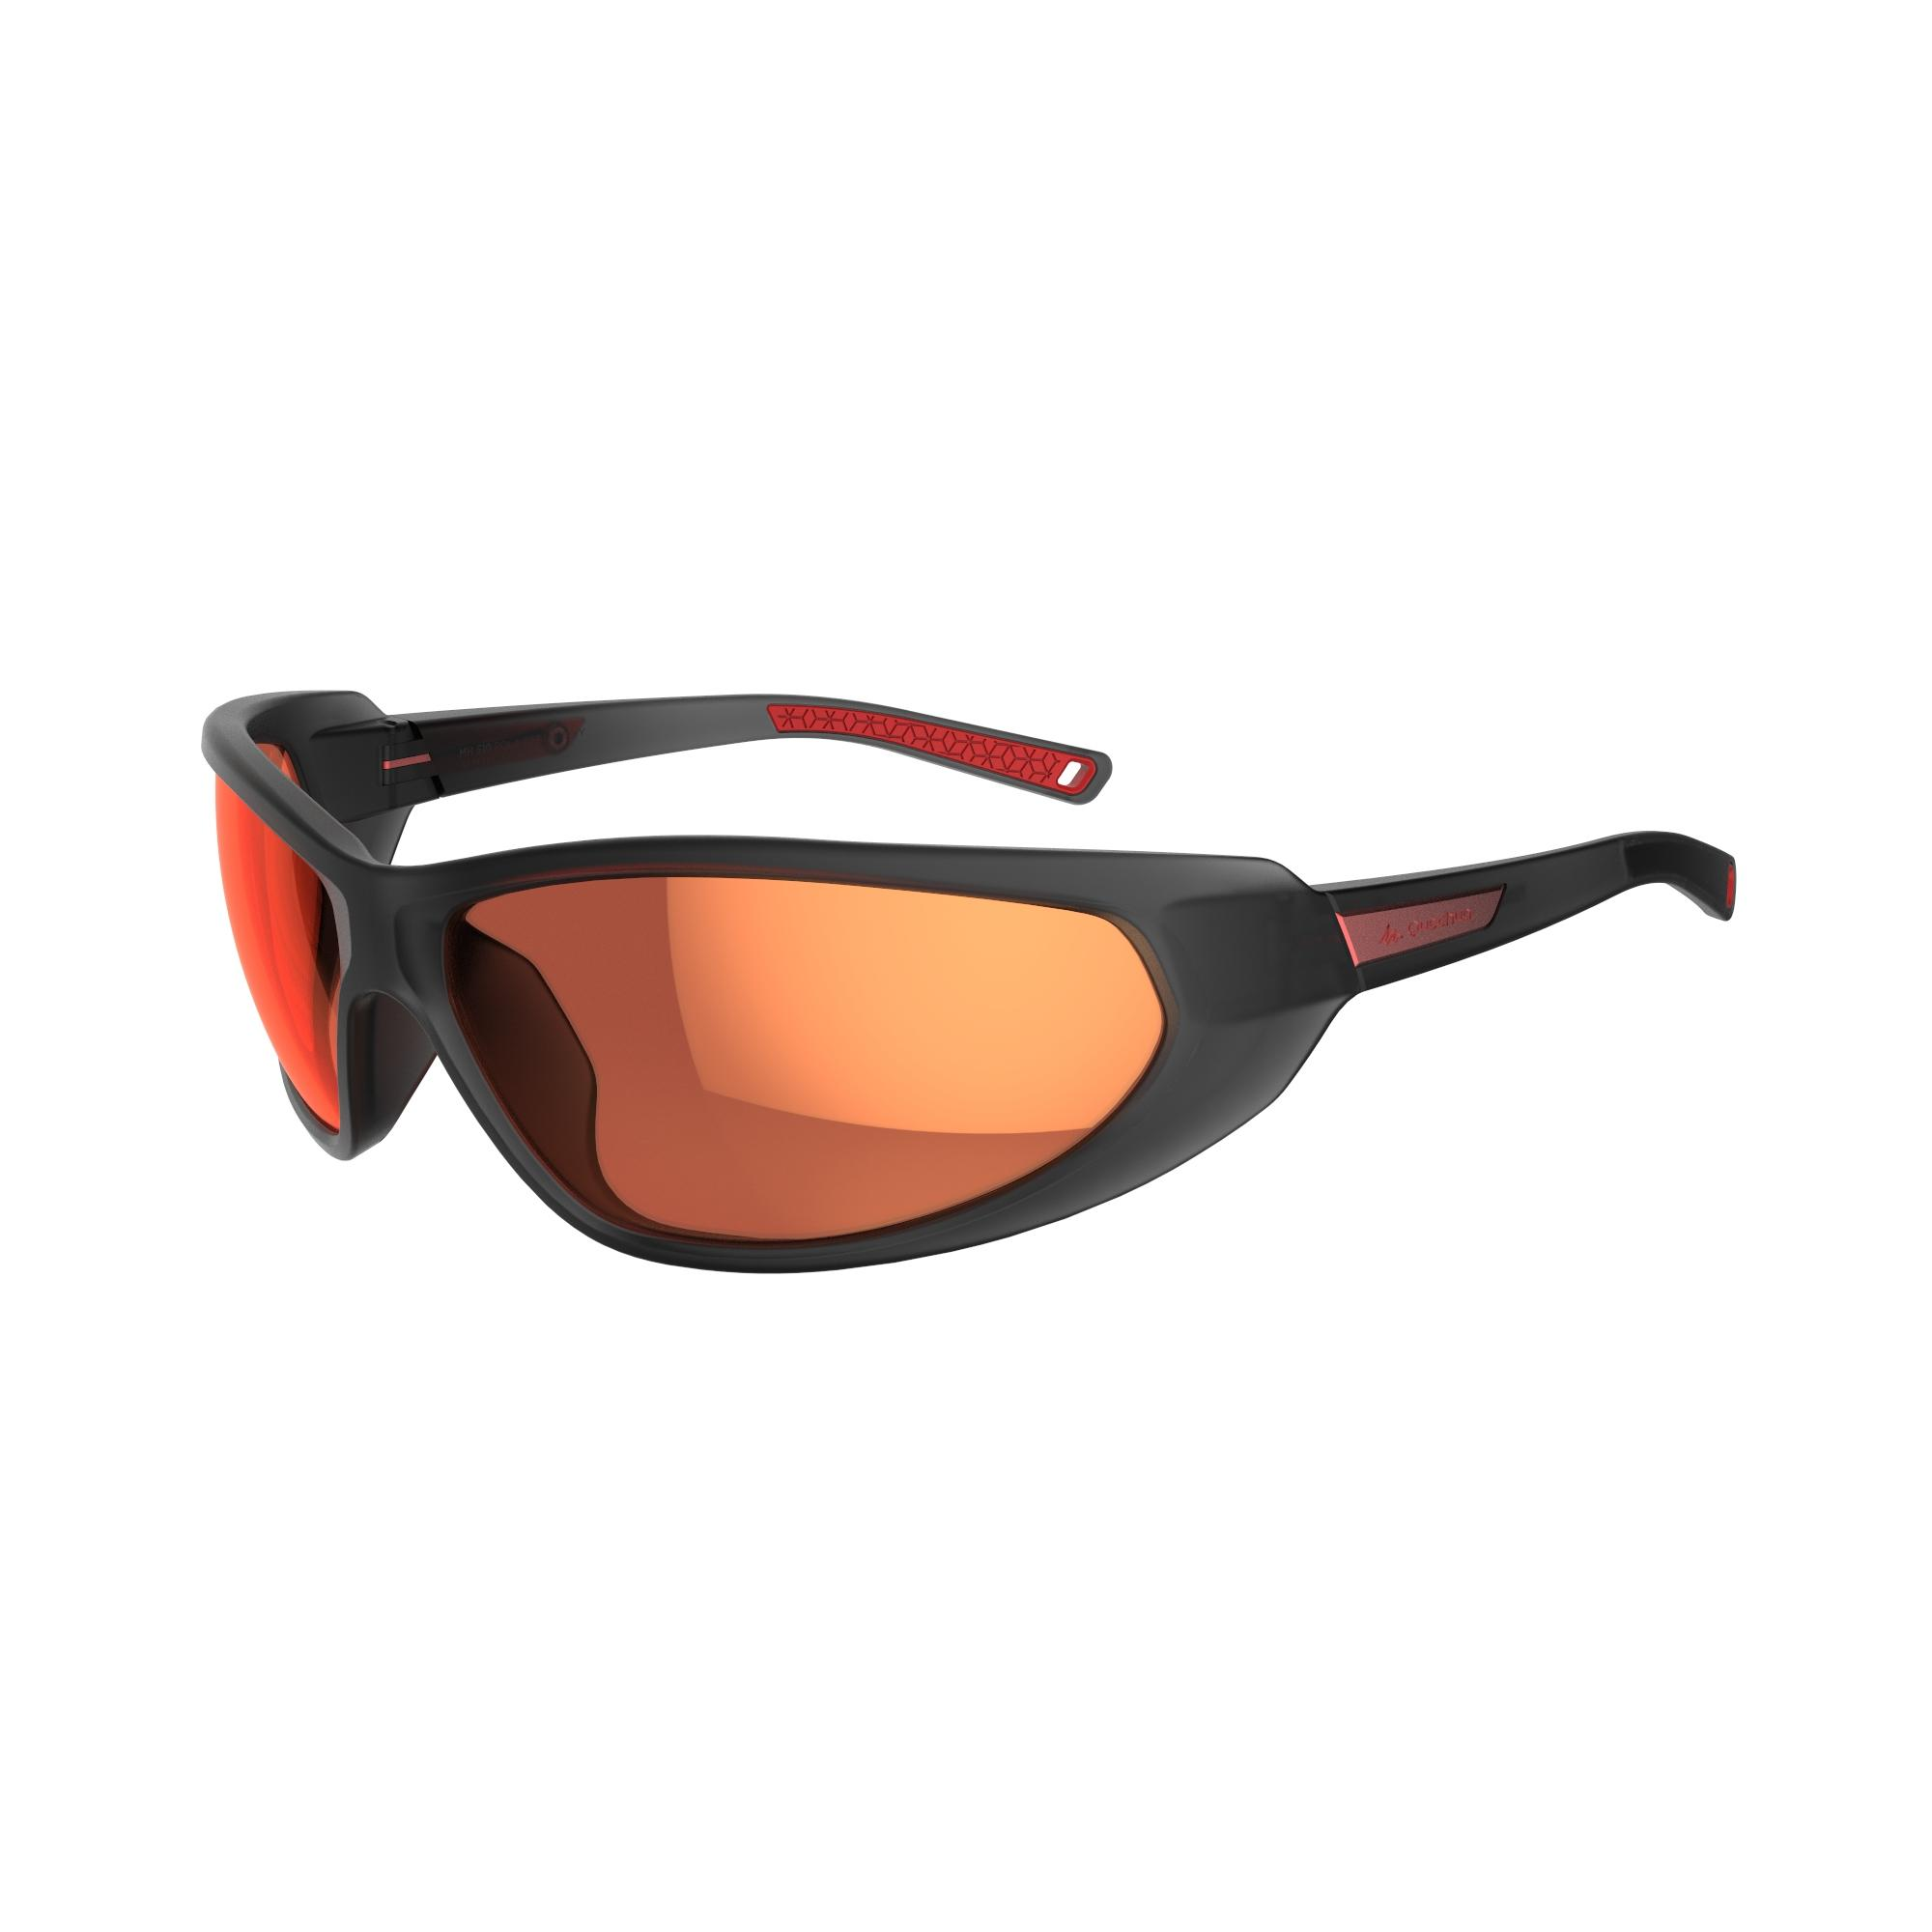 Category 4 MH 510 polarised hiking glasses – Grey and Red